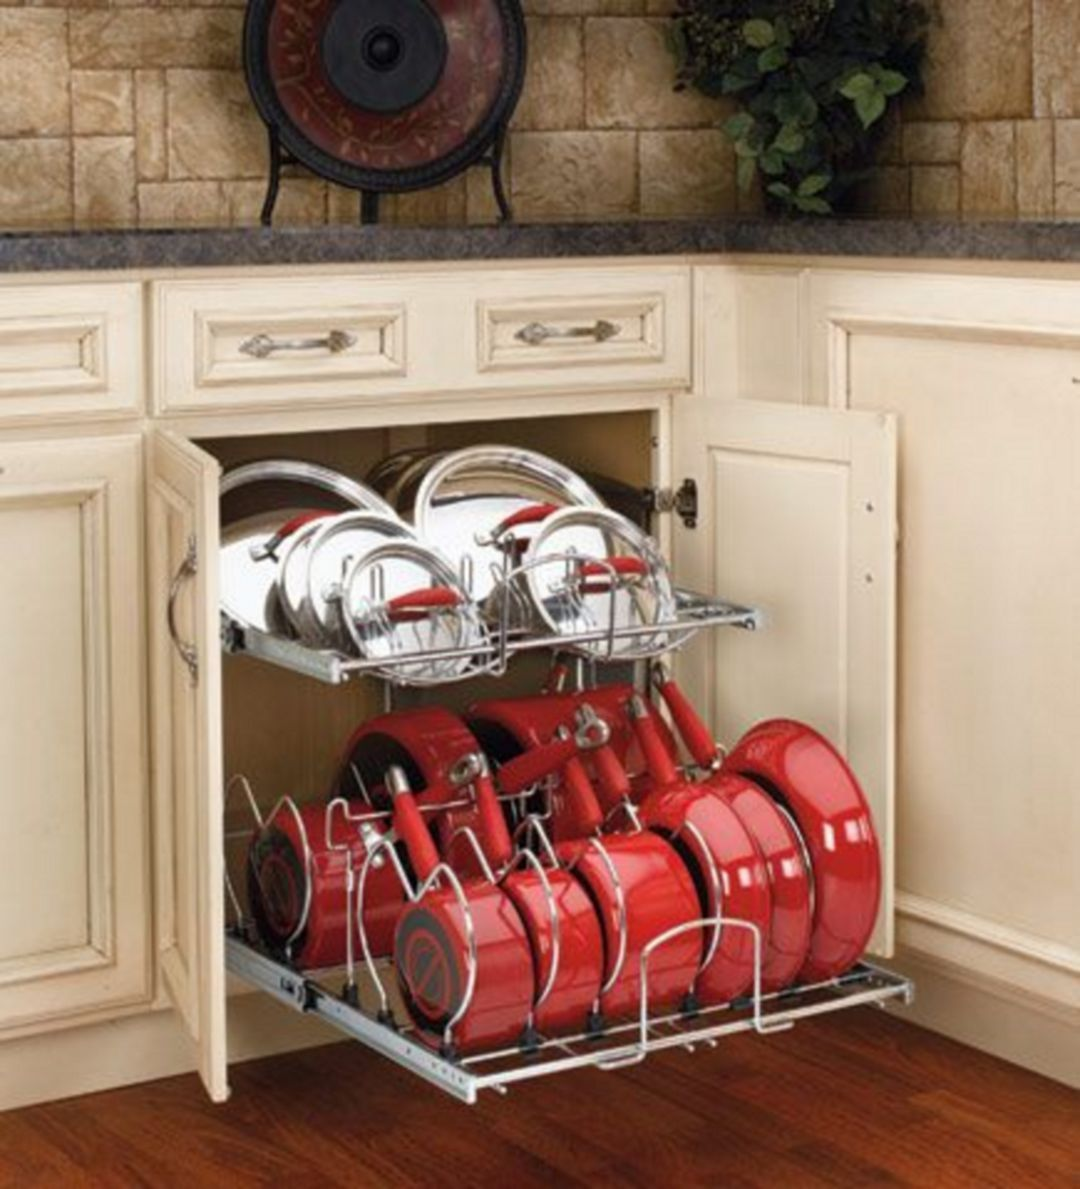 Outstanding kitchen organization ideas wont want miss 29